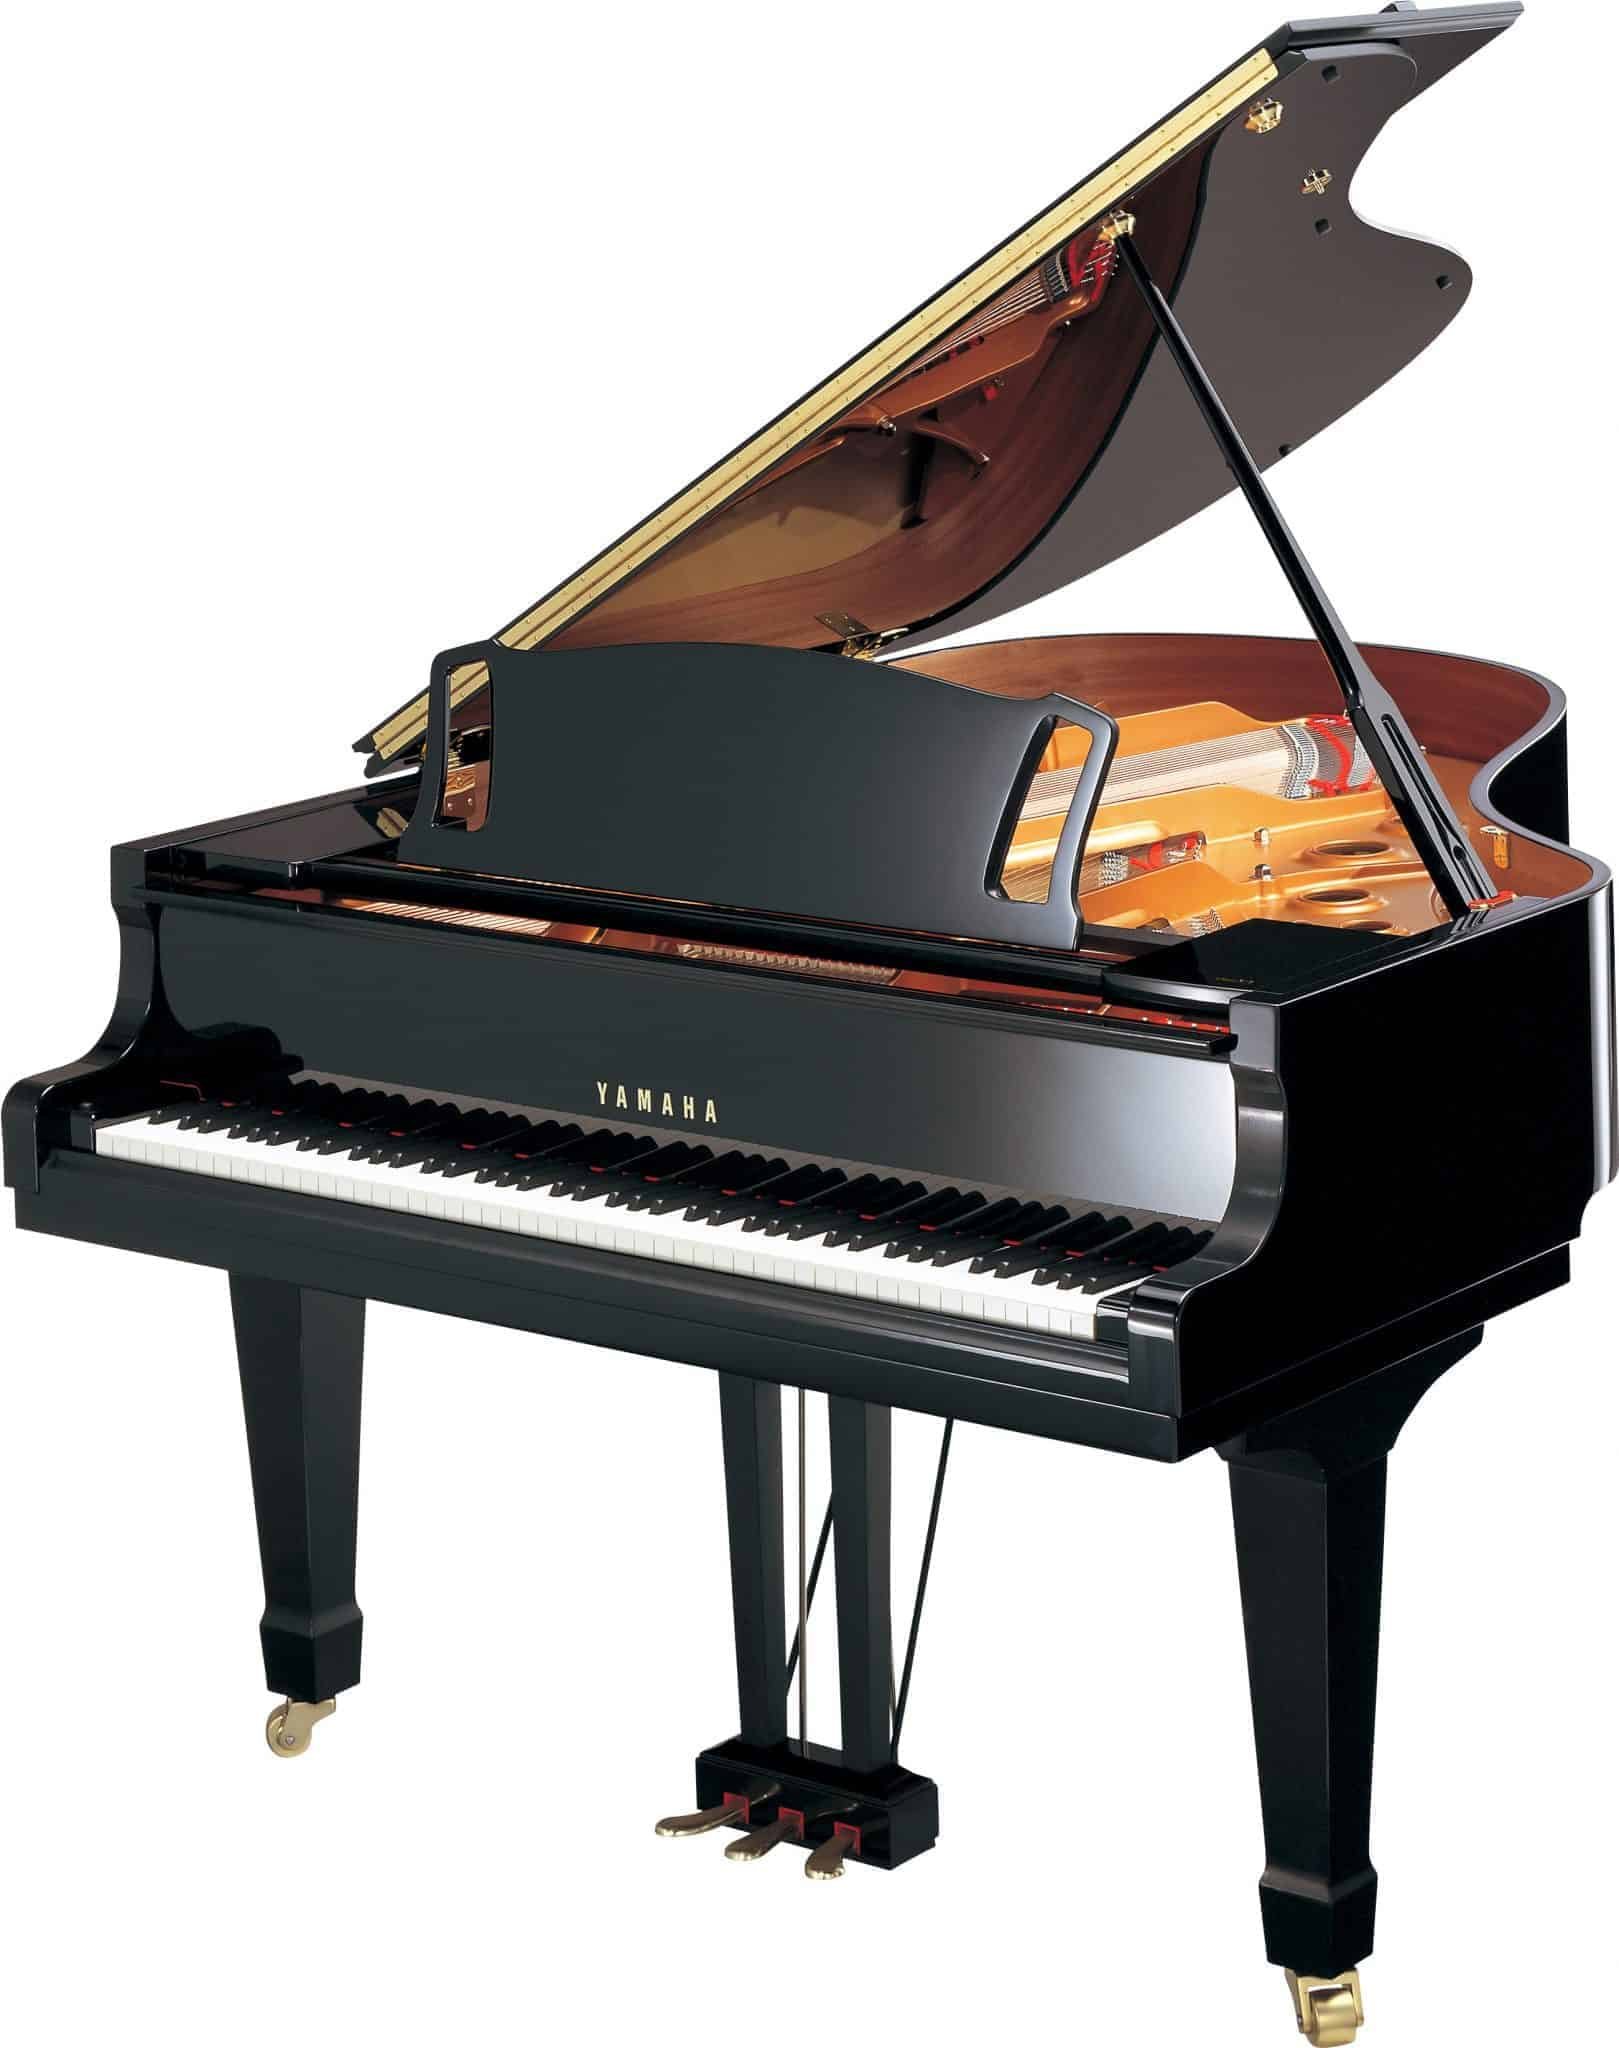 Yamaha c3x piano gallery for Yamaha piano com